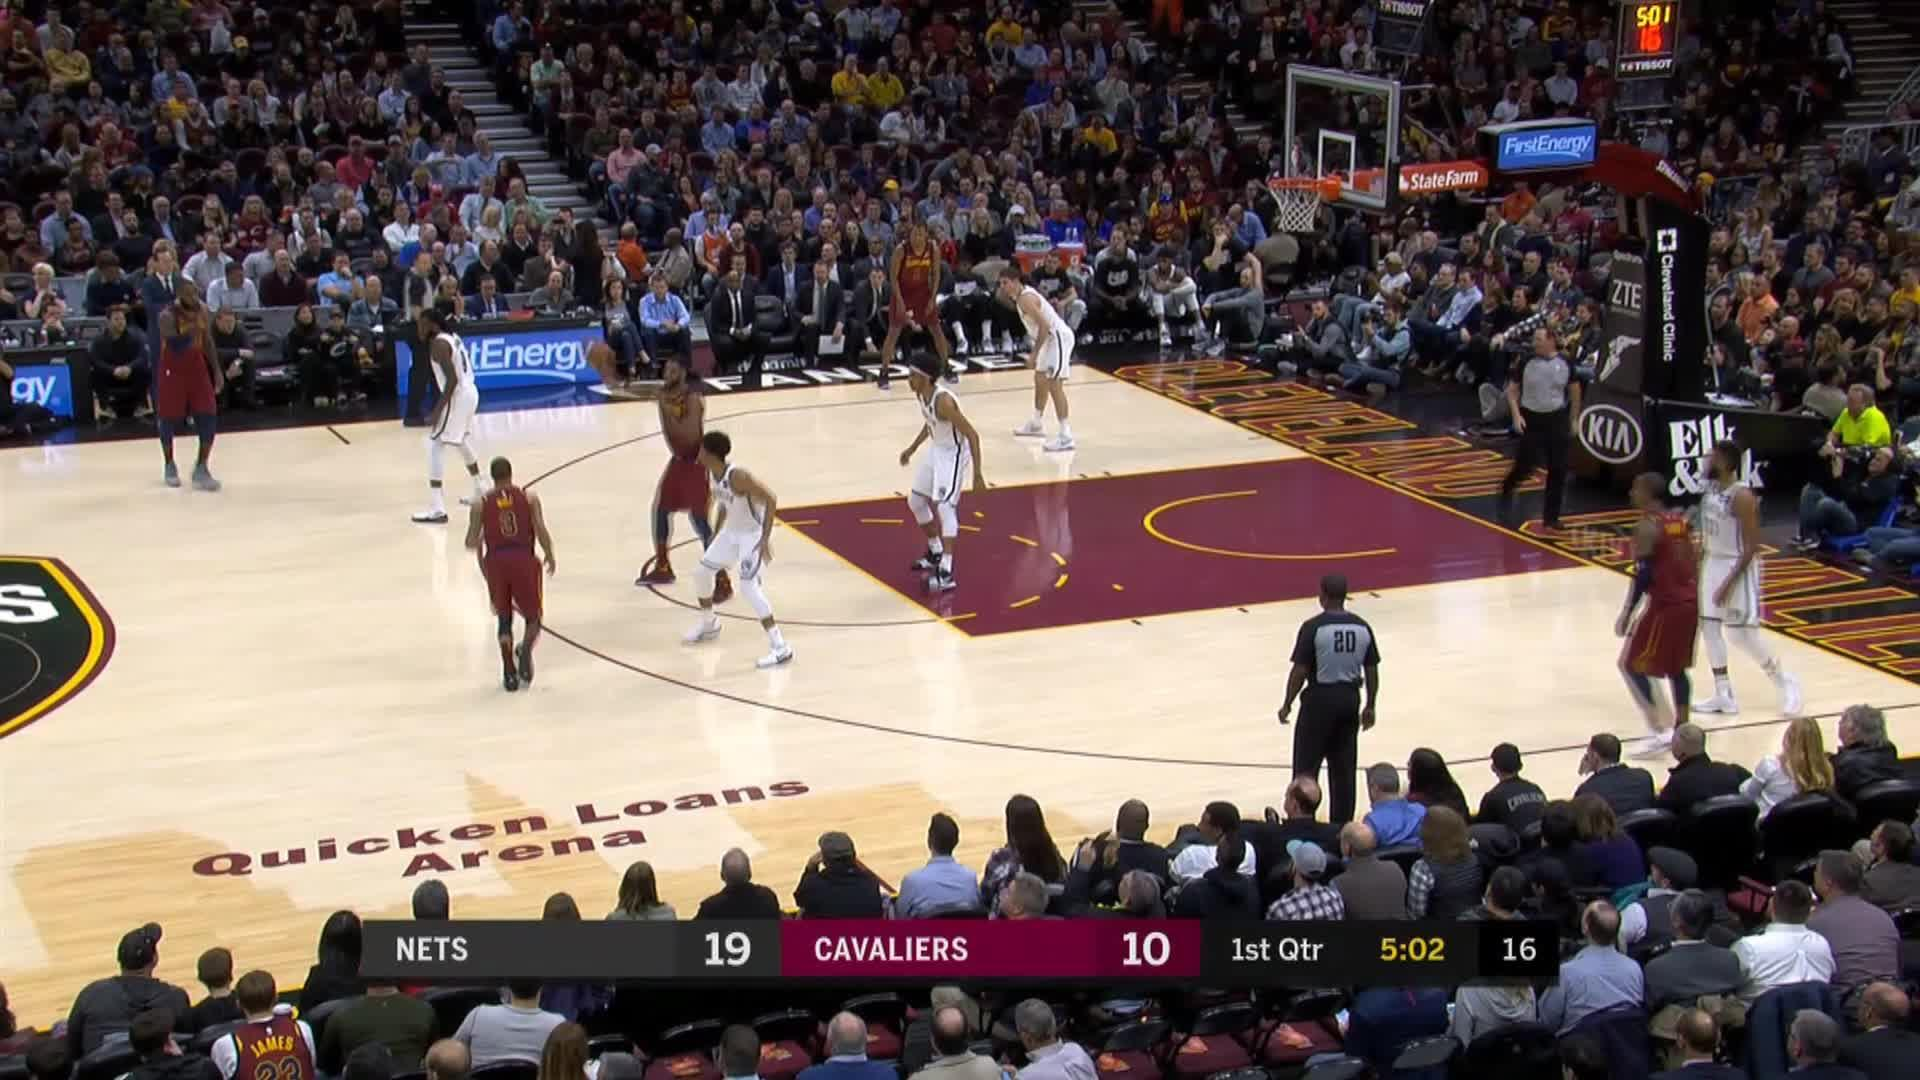 Story of the day - LeBron makes triple-double as Cavs win